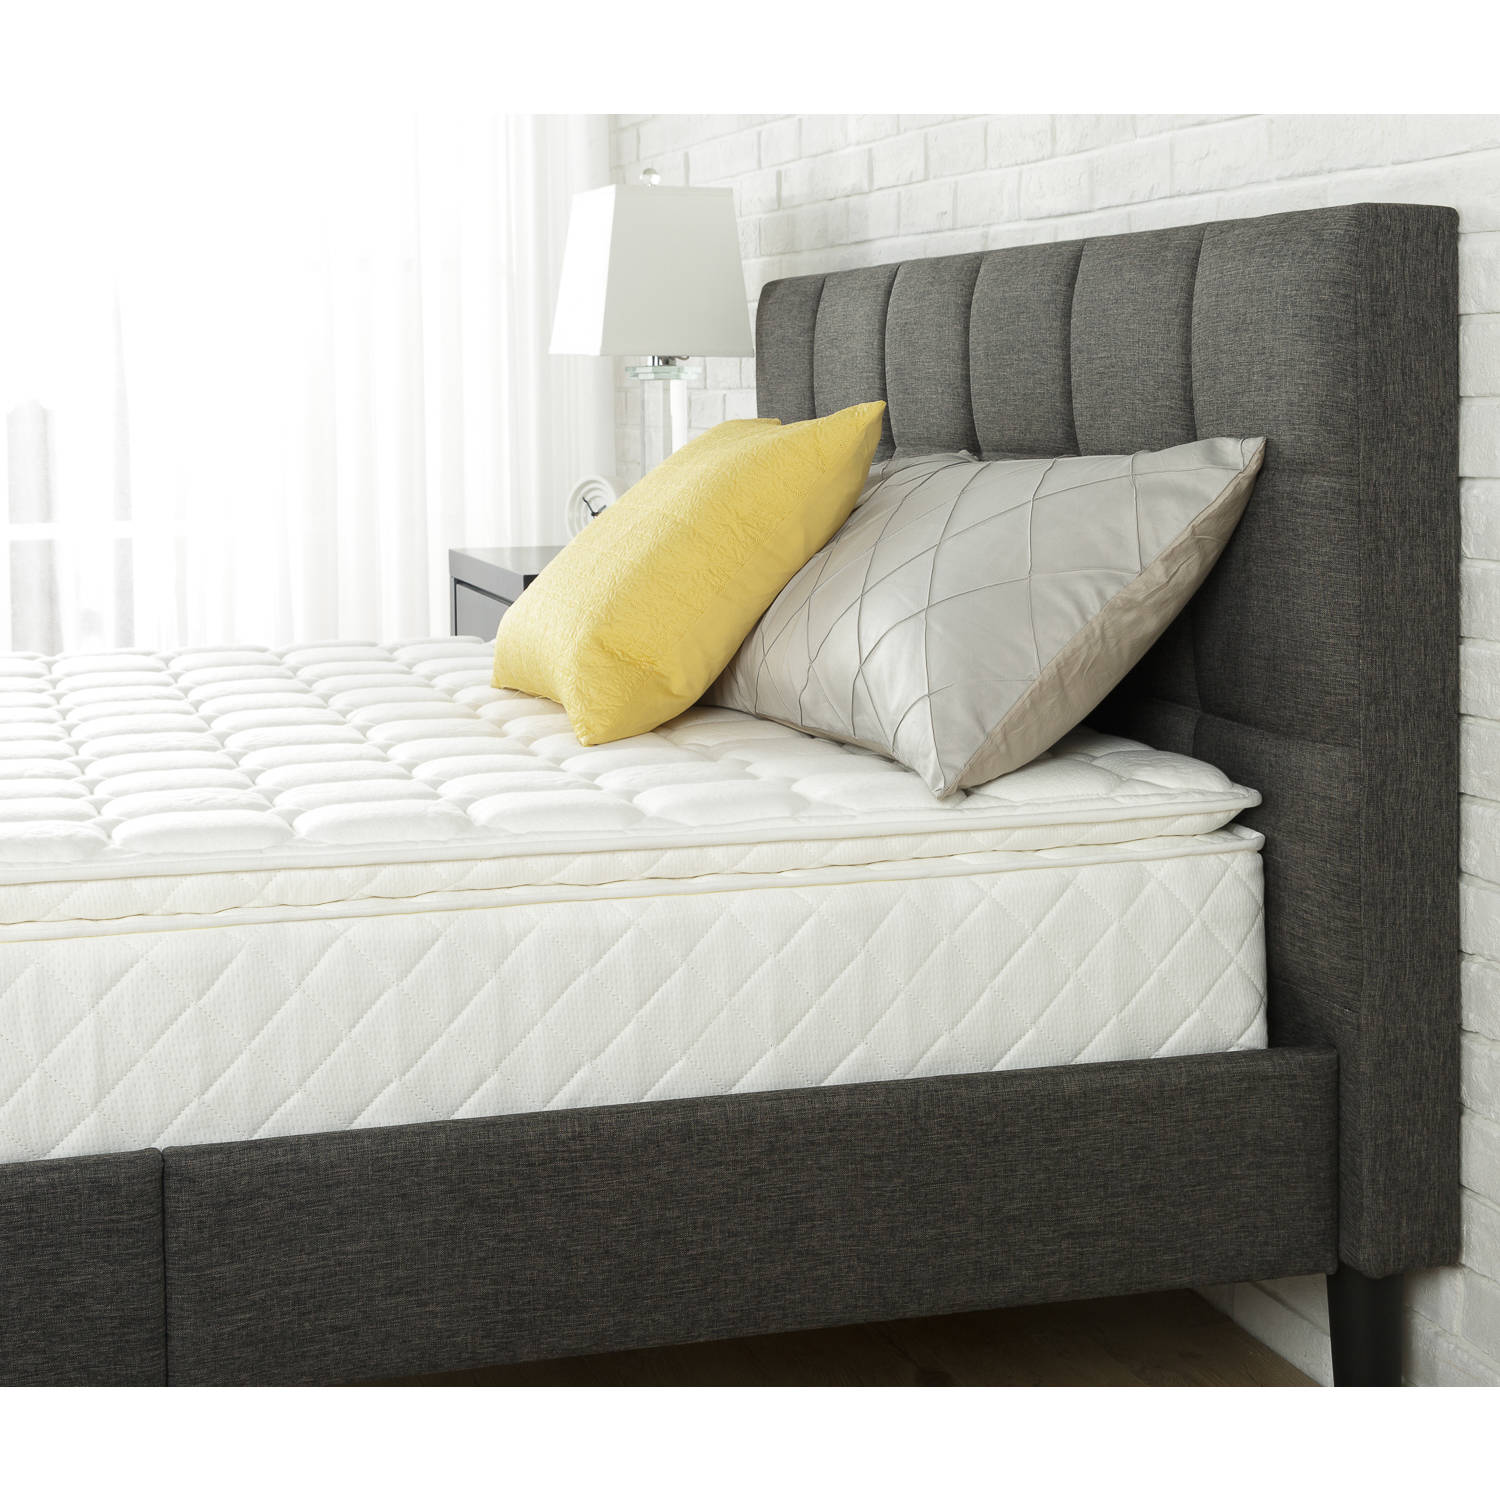 nongzi mattress glenellen perfect on the sleeper rediscover serta sleep queen top p topper co restorative pillowtop pillow